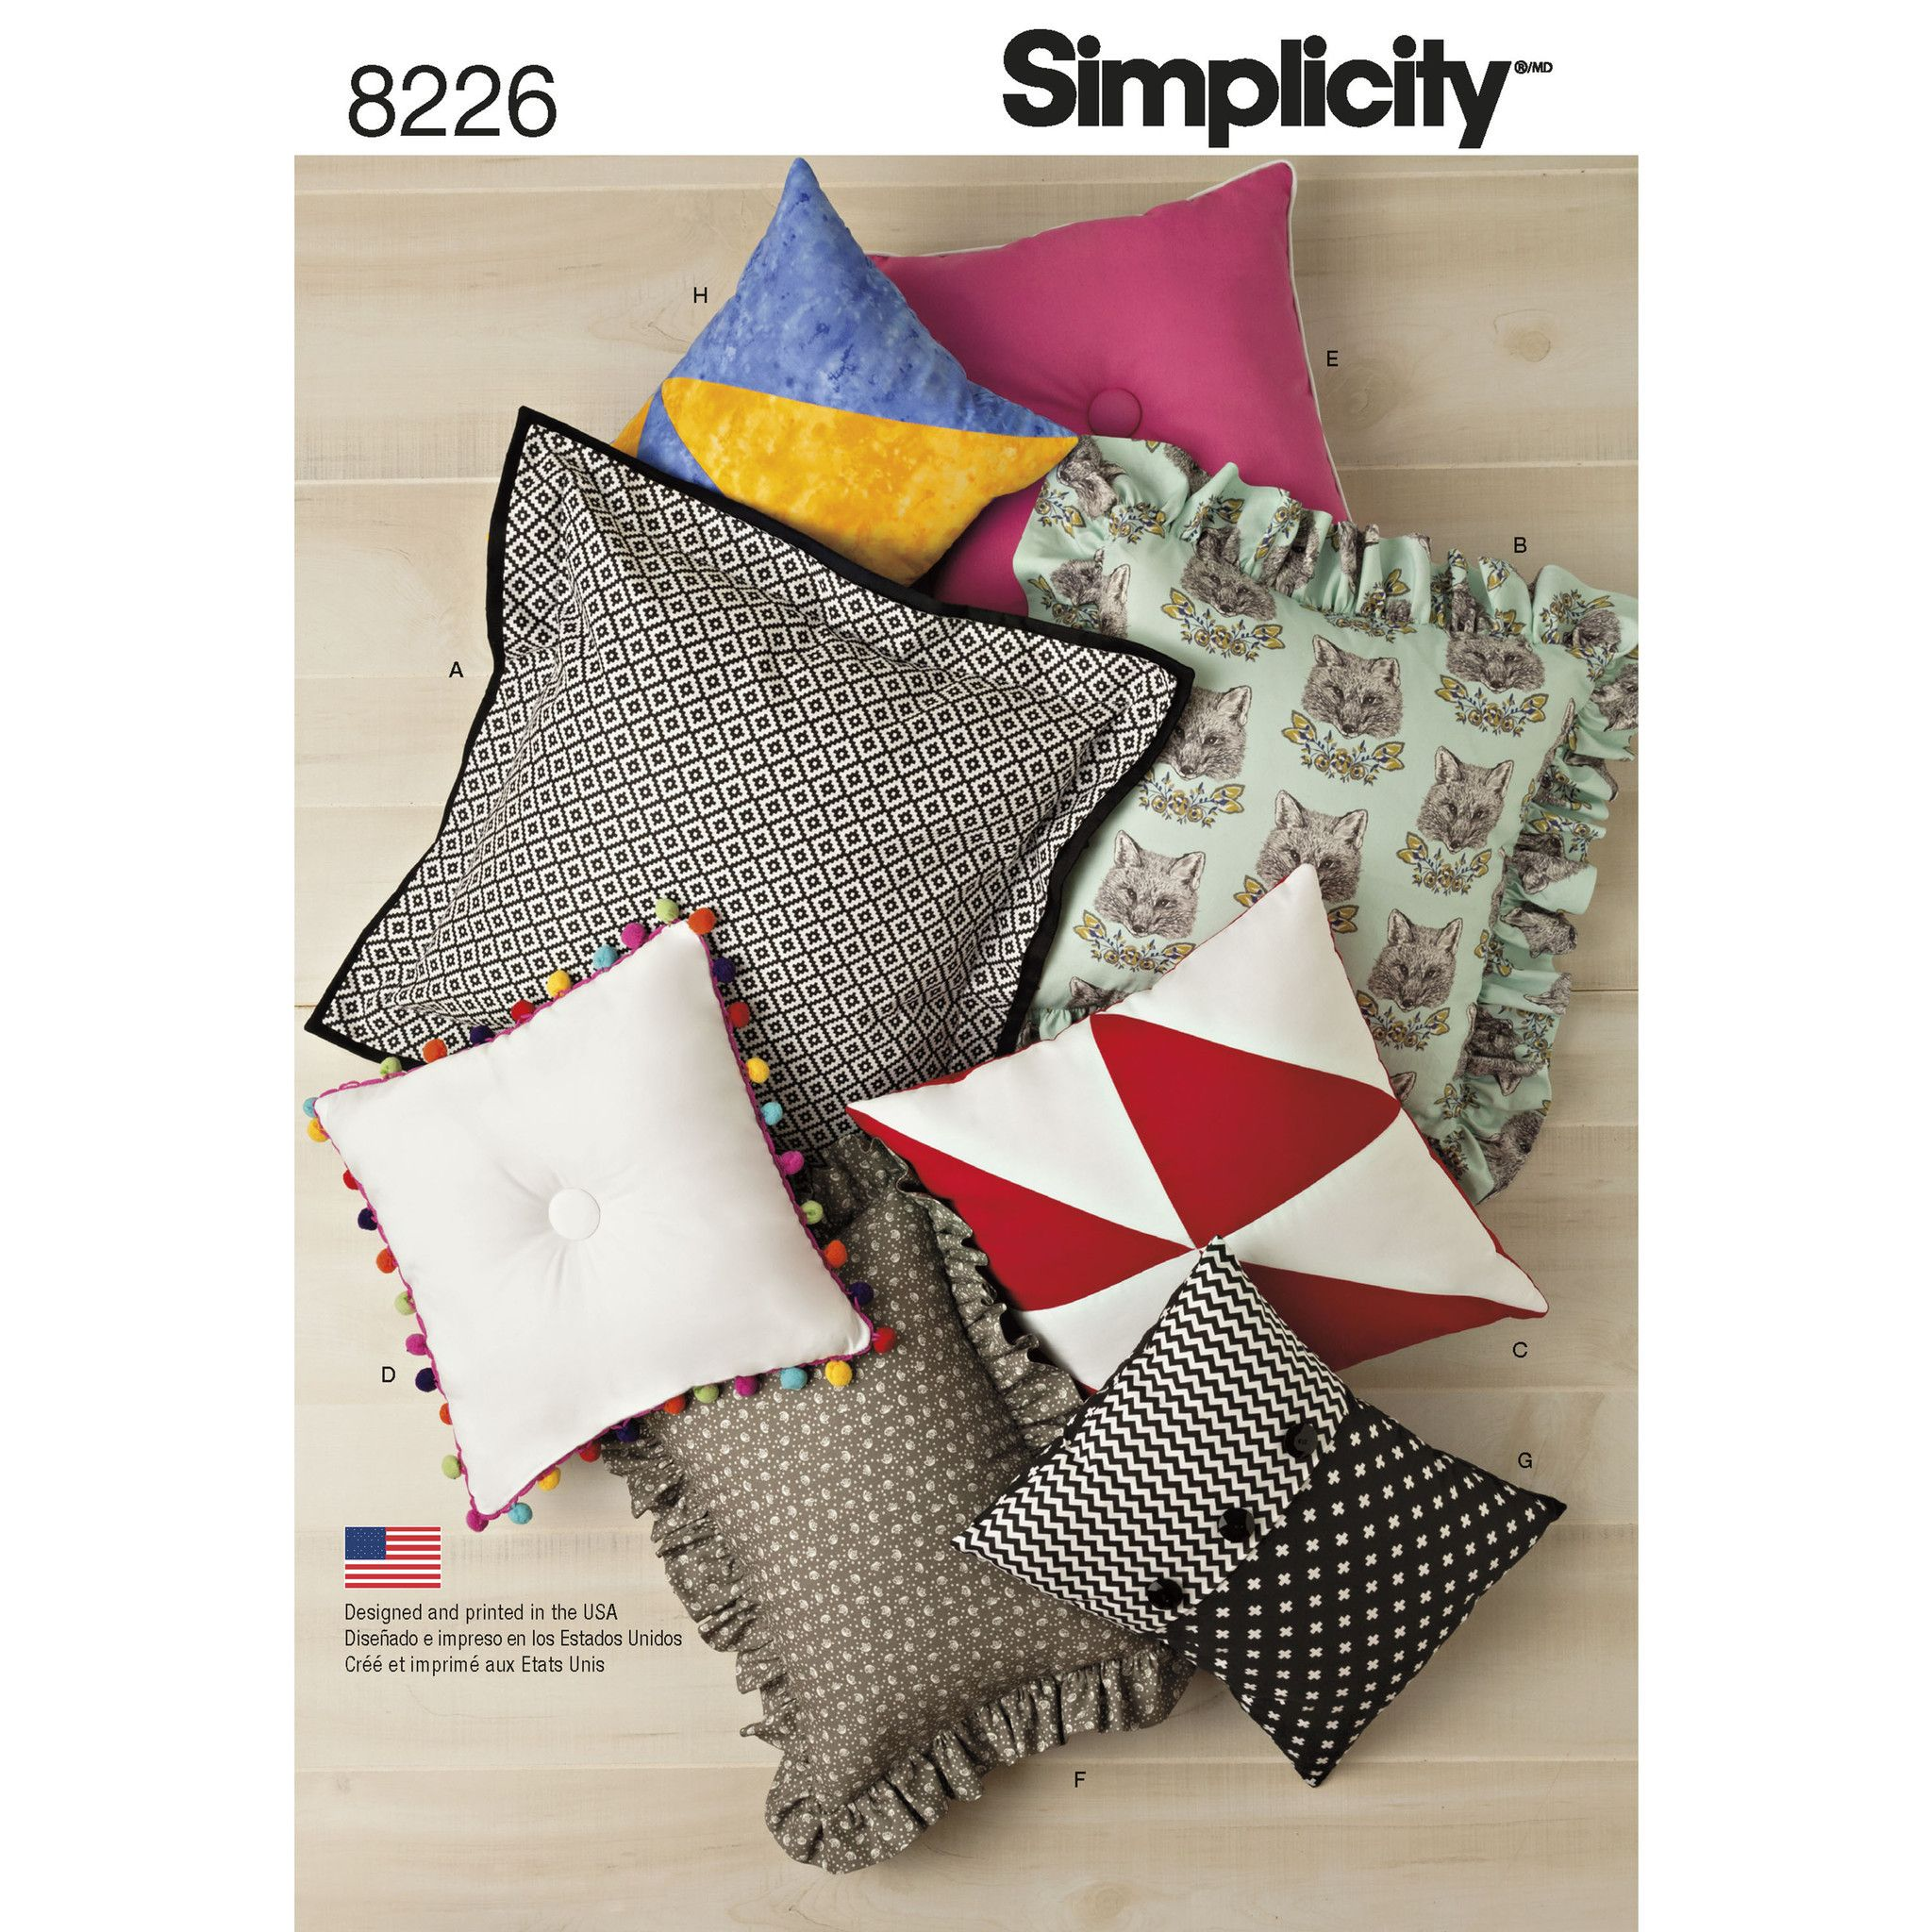 Simplicity s8226 easy pillows sewing patterns pinterest update your interiors or sew a cute gift with this easy to sew pillow pattern pattern gives you fabric trim and shape options on these pillows sized x x x jeuxipadfo Image collections